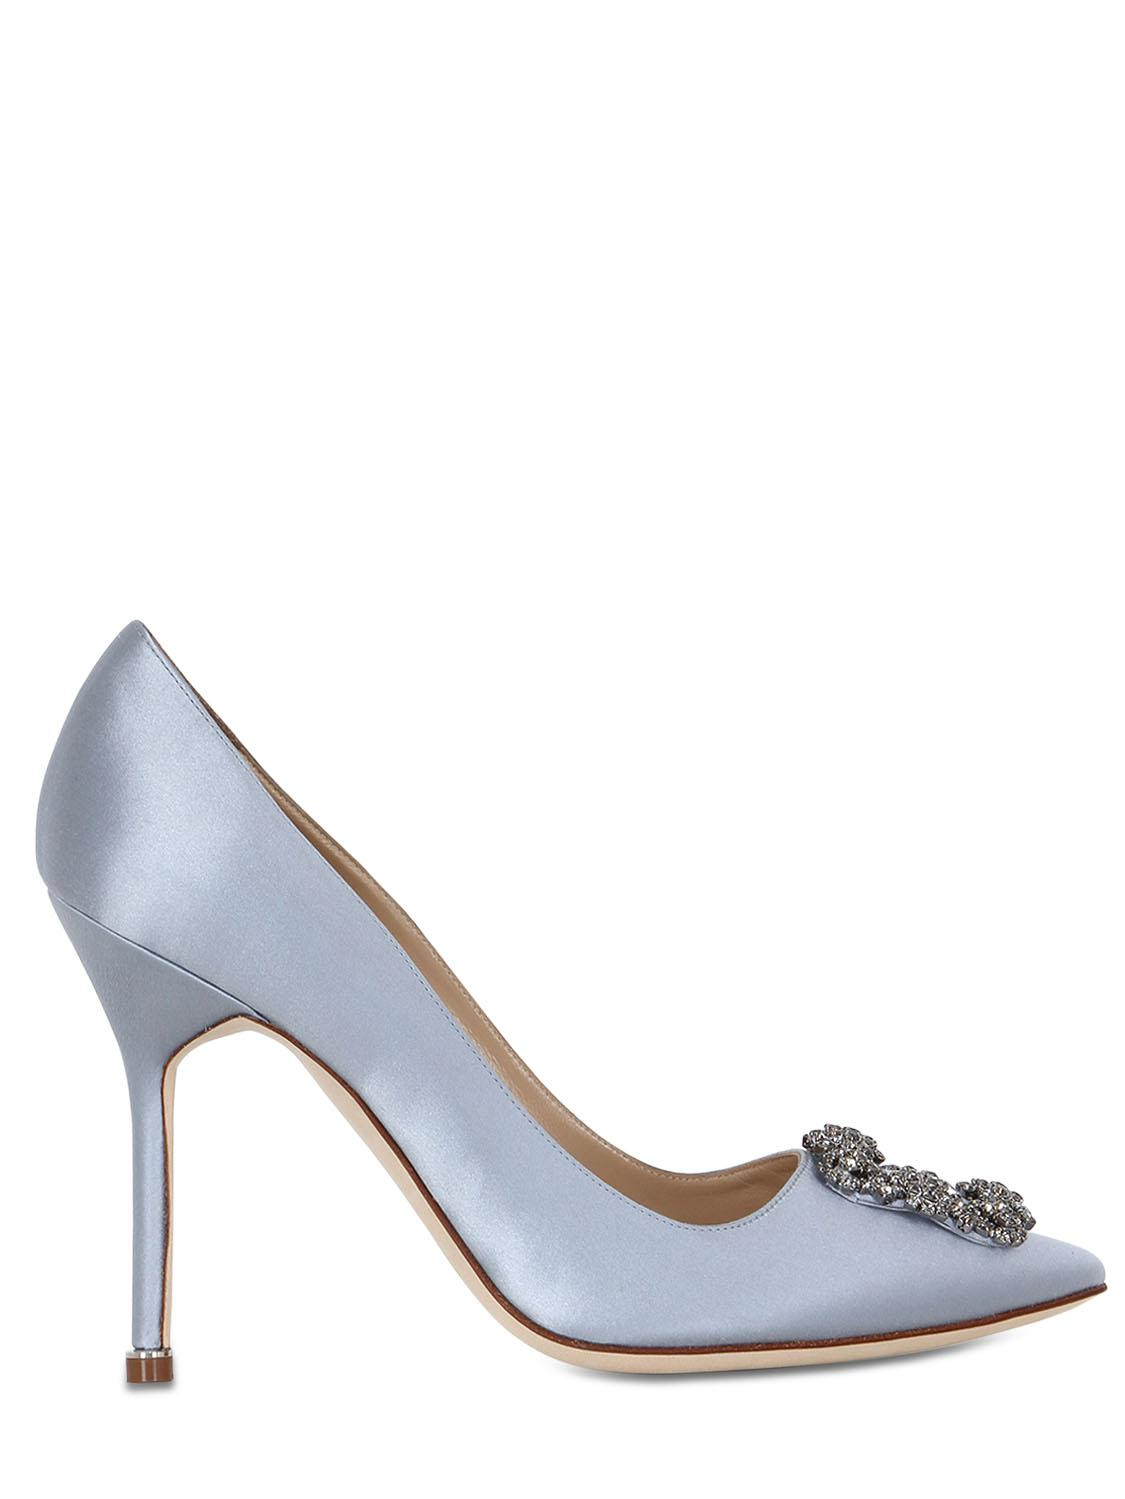 9c252a52fbdf Lyst - Manolo Blahnik 105mm Hangisi Swarovski Silk Satin Pumps in Blue